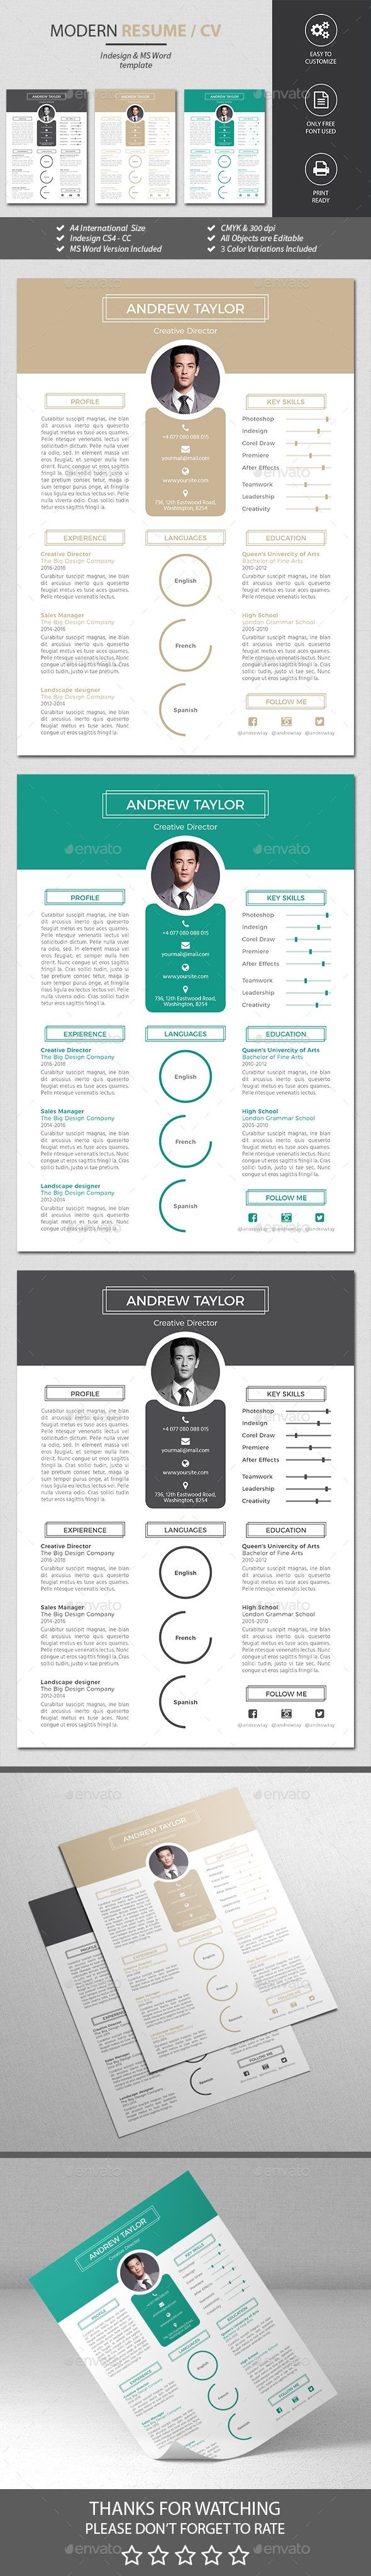 Resume Templates Indesign New Resume Template Indesign Indd Ms Word  Resume Templates .